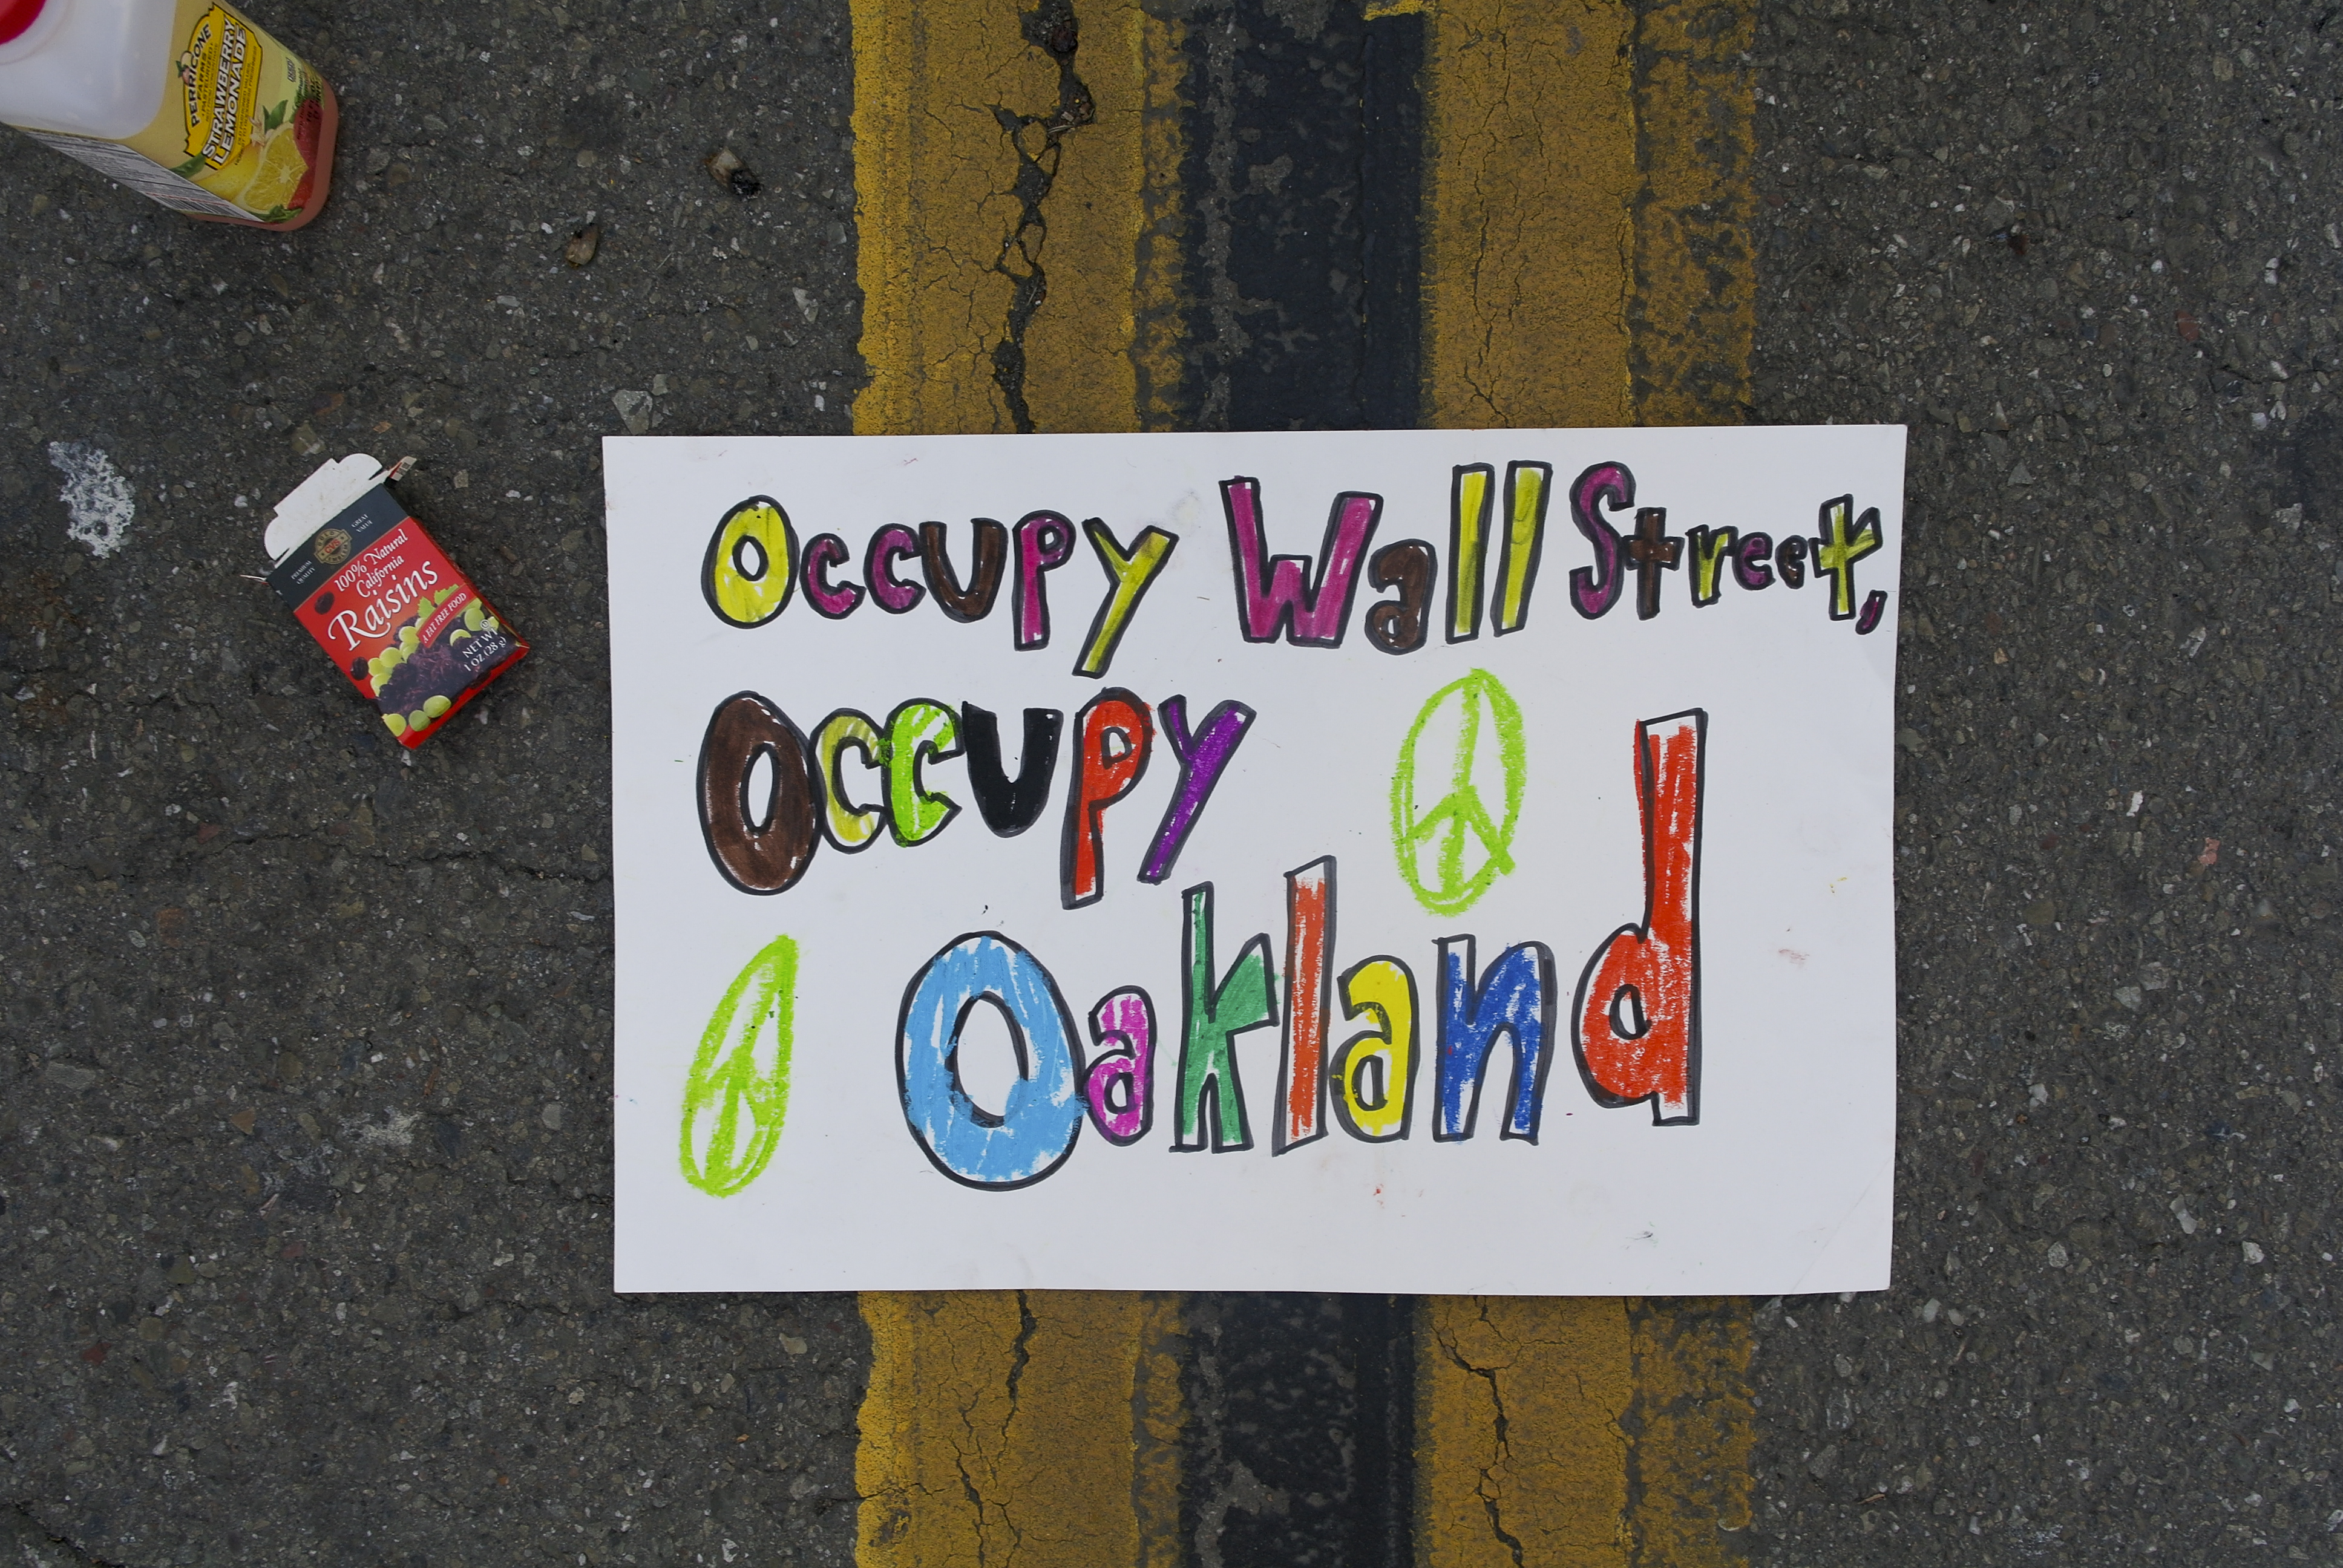 Oakland Strike Nov 2, 2011